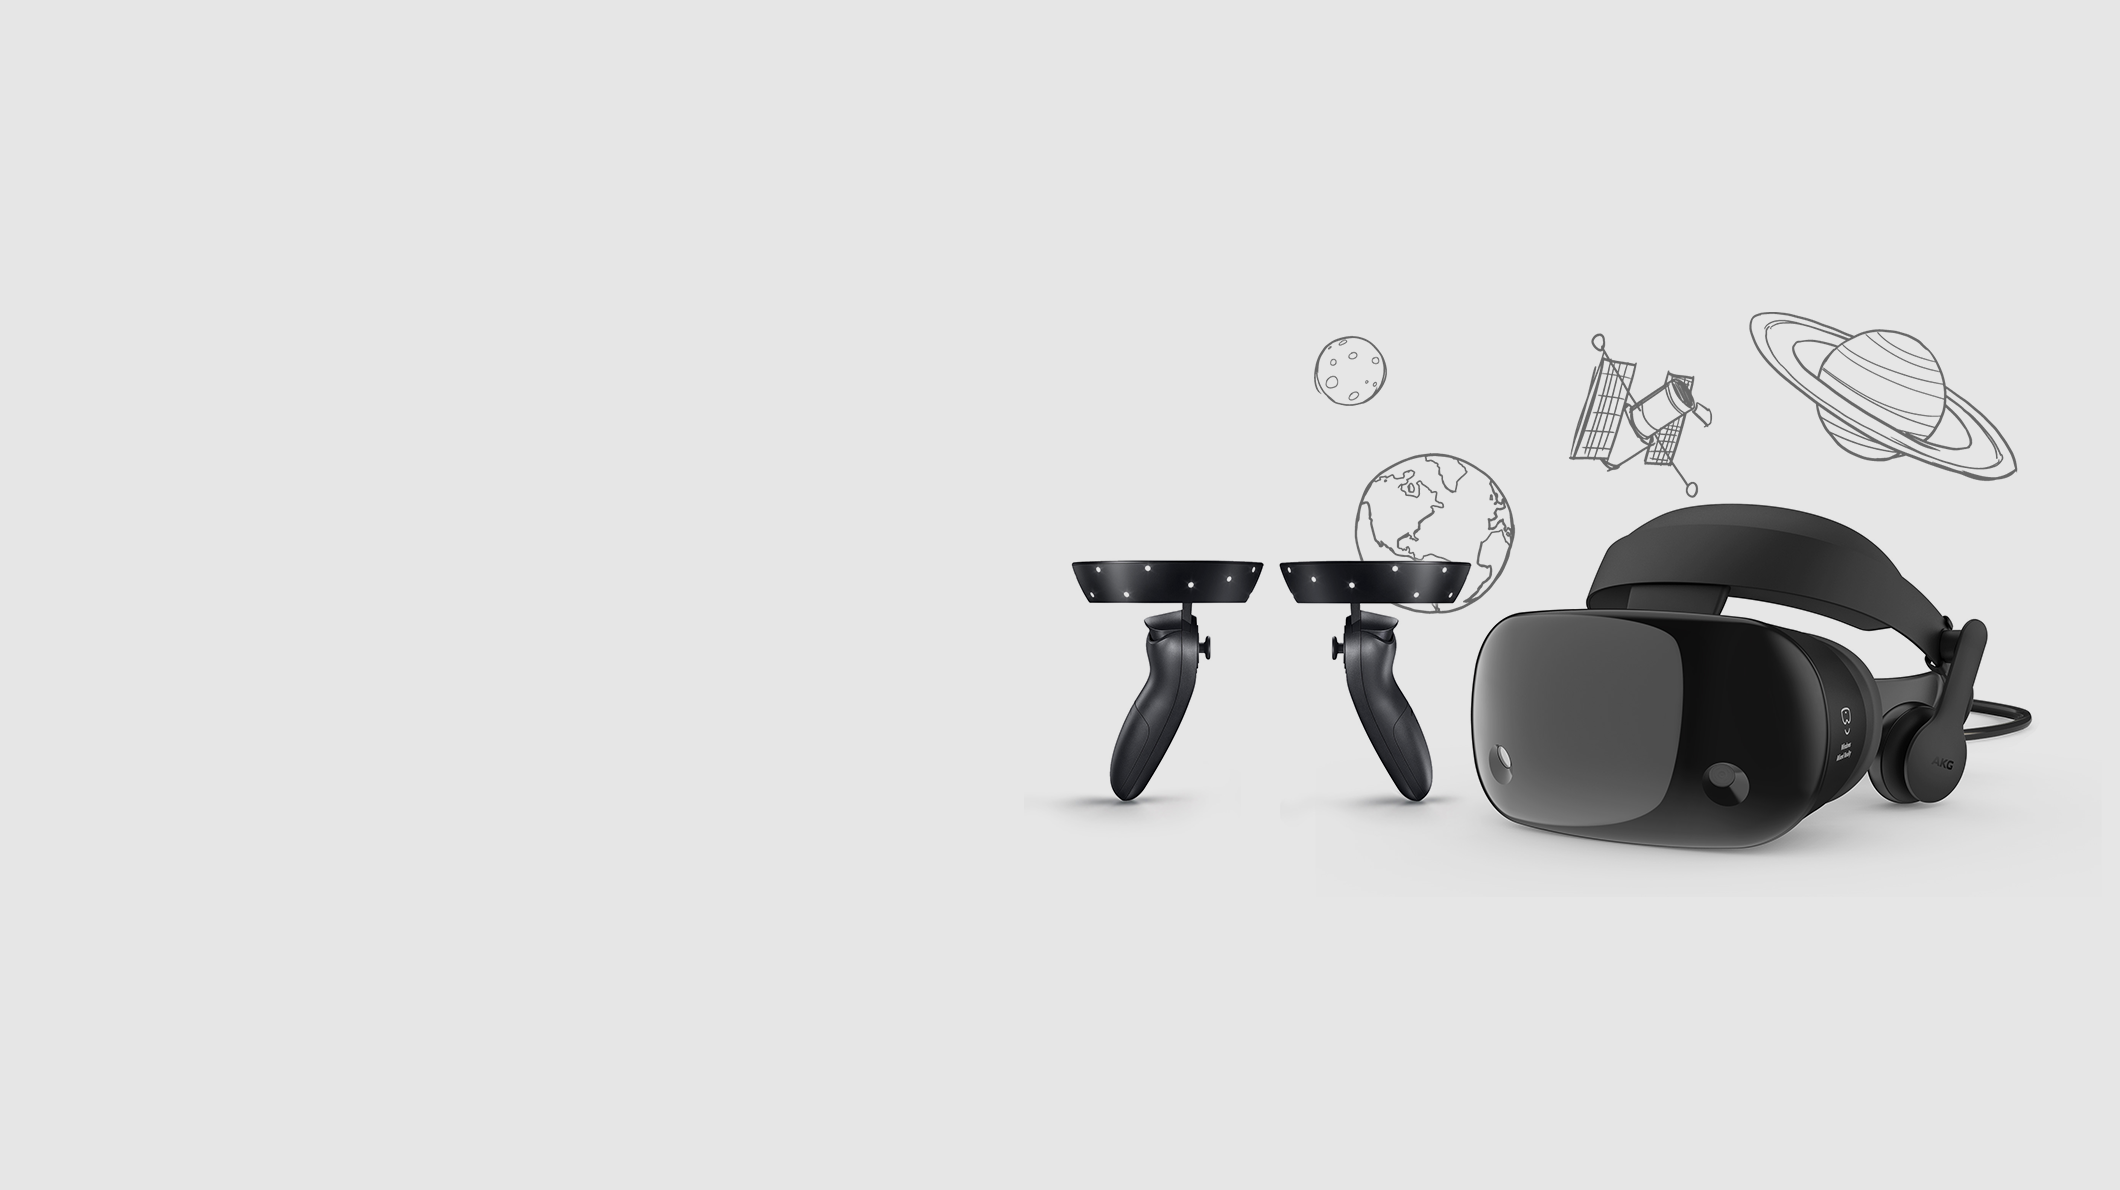 A Samsung Odyssey headset and controllers